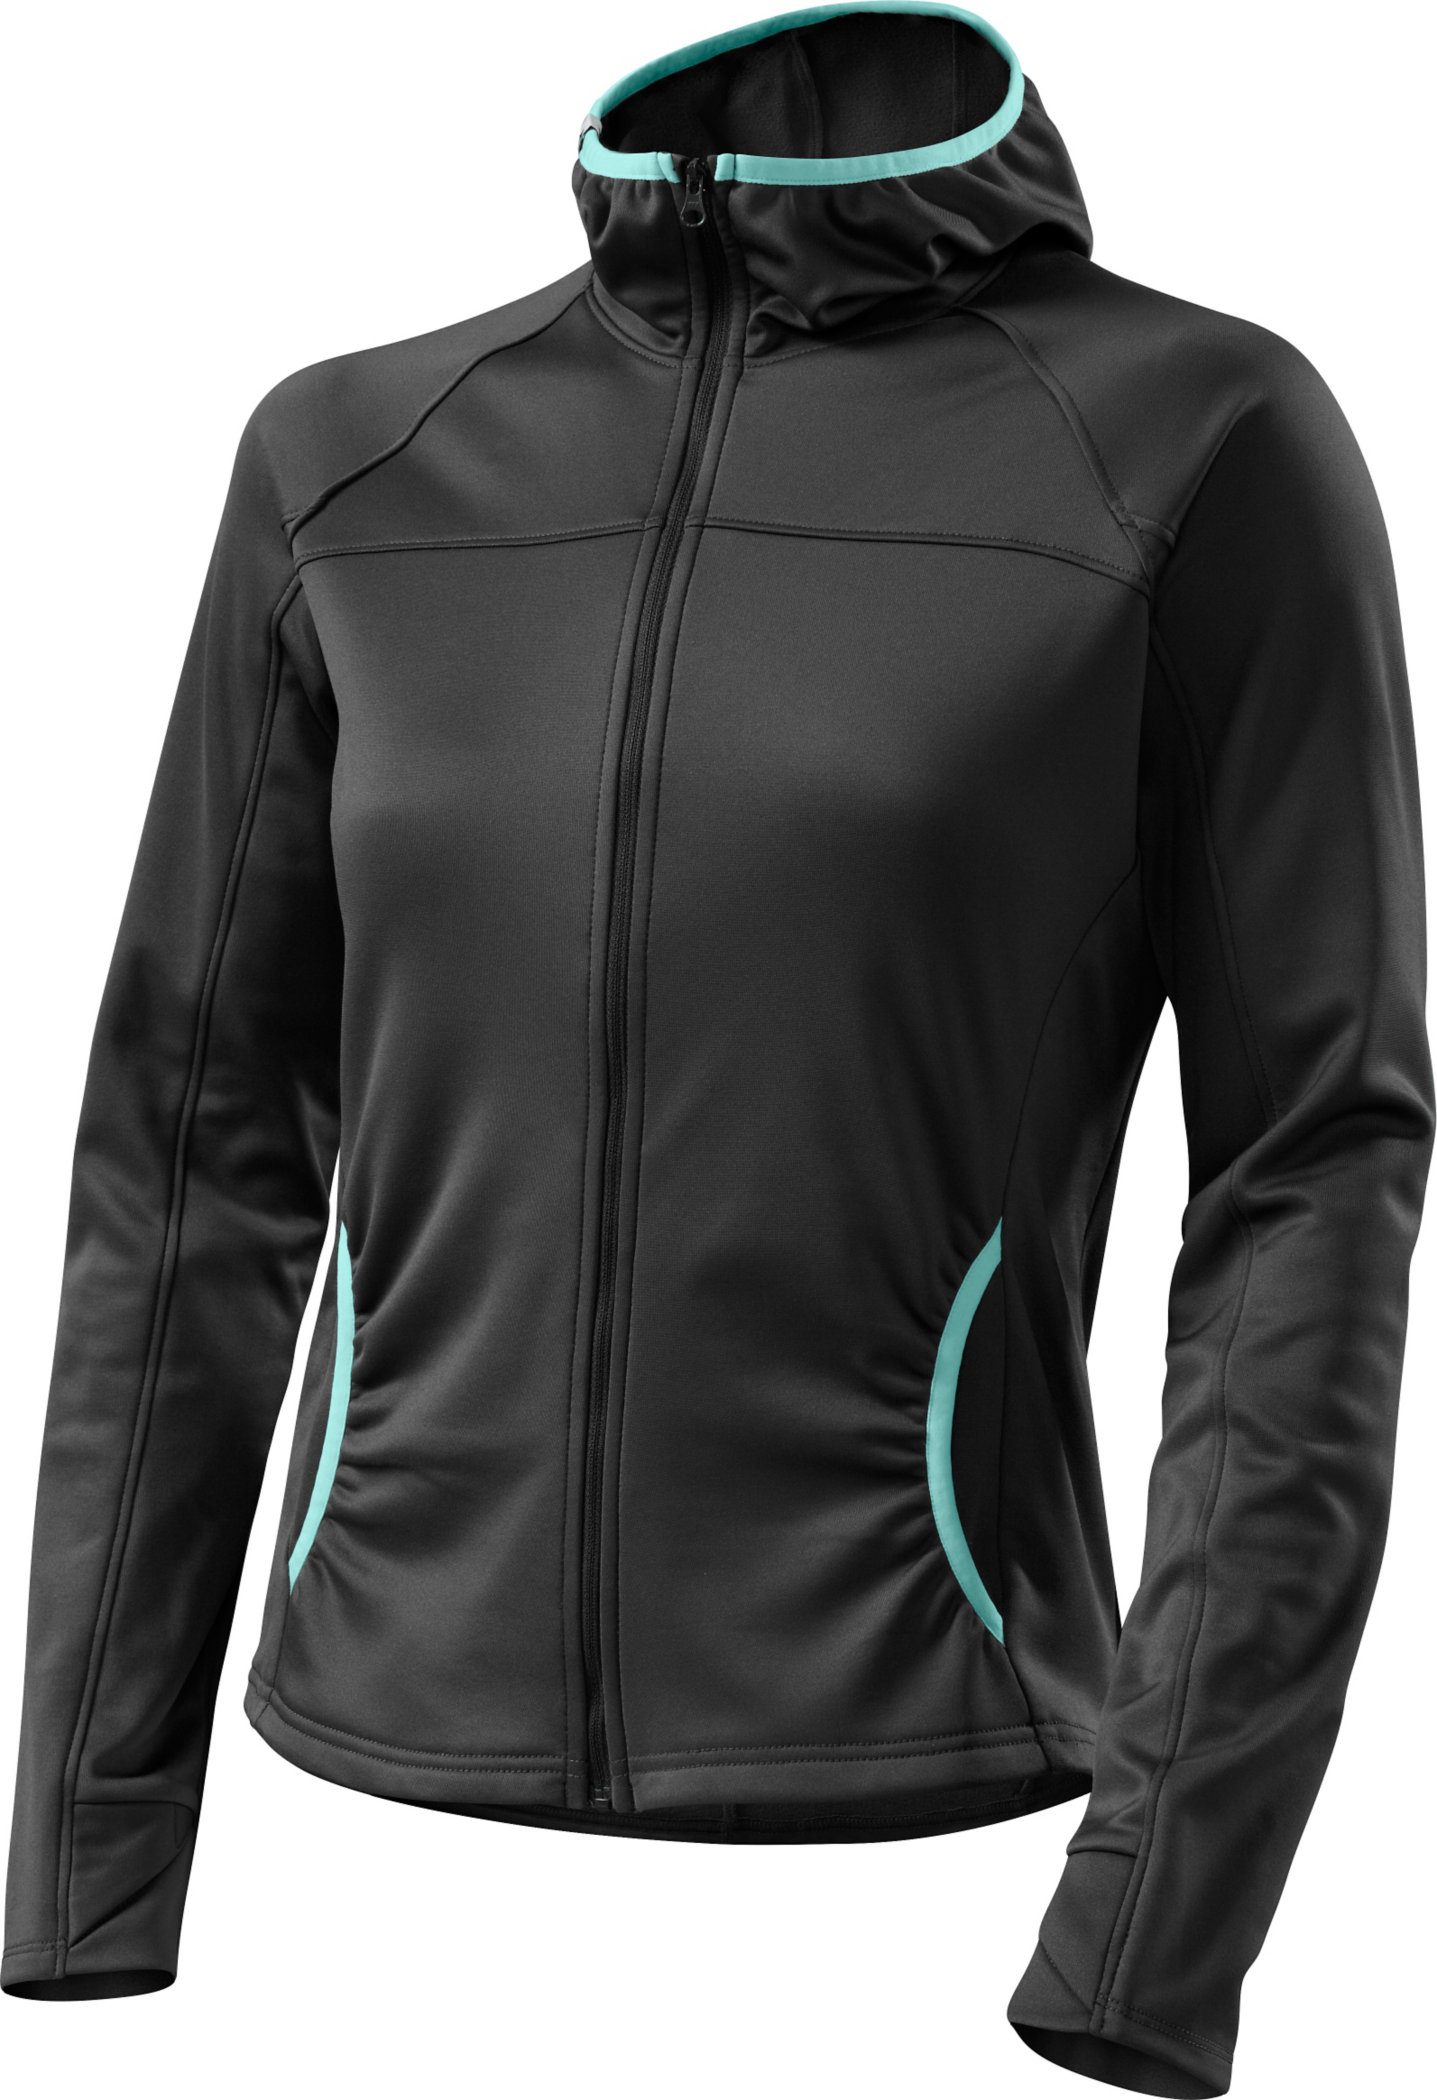 Specialized Women´s Therminal Mountain Jersey Carbon/Teal Large - Alpha Bikes